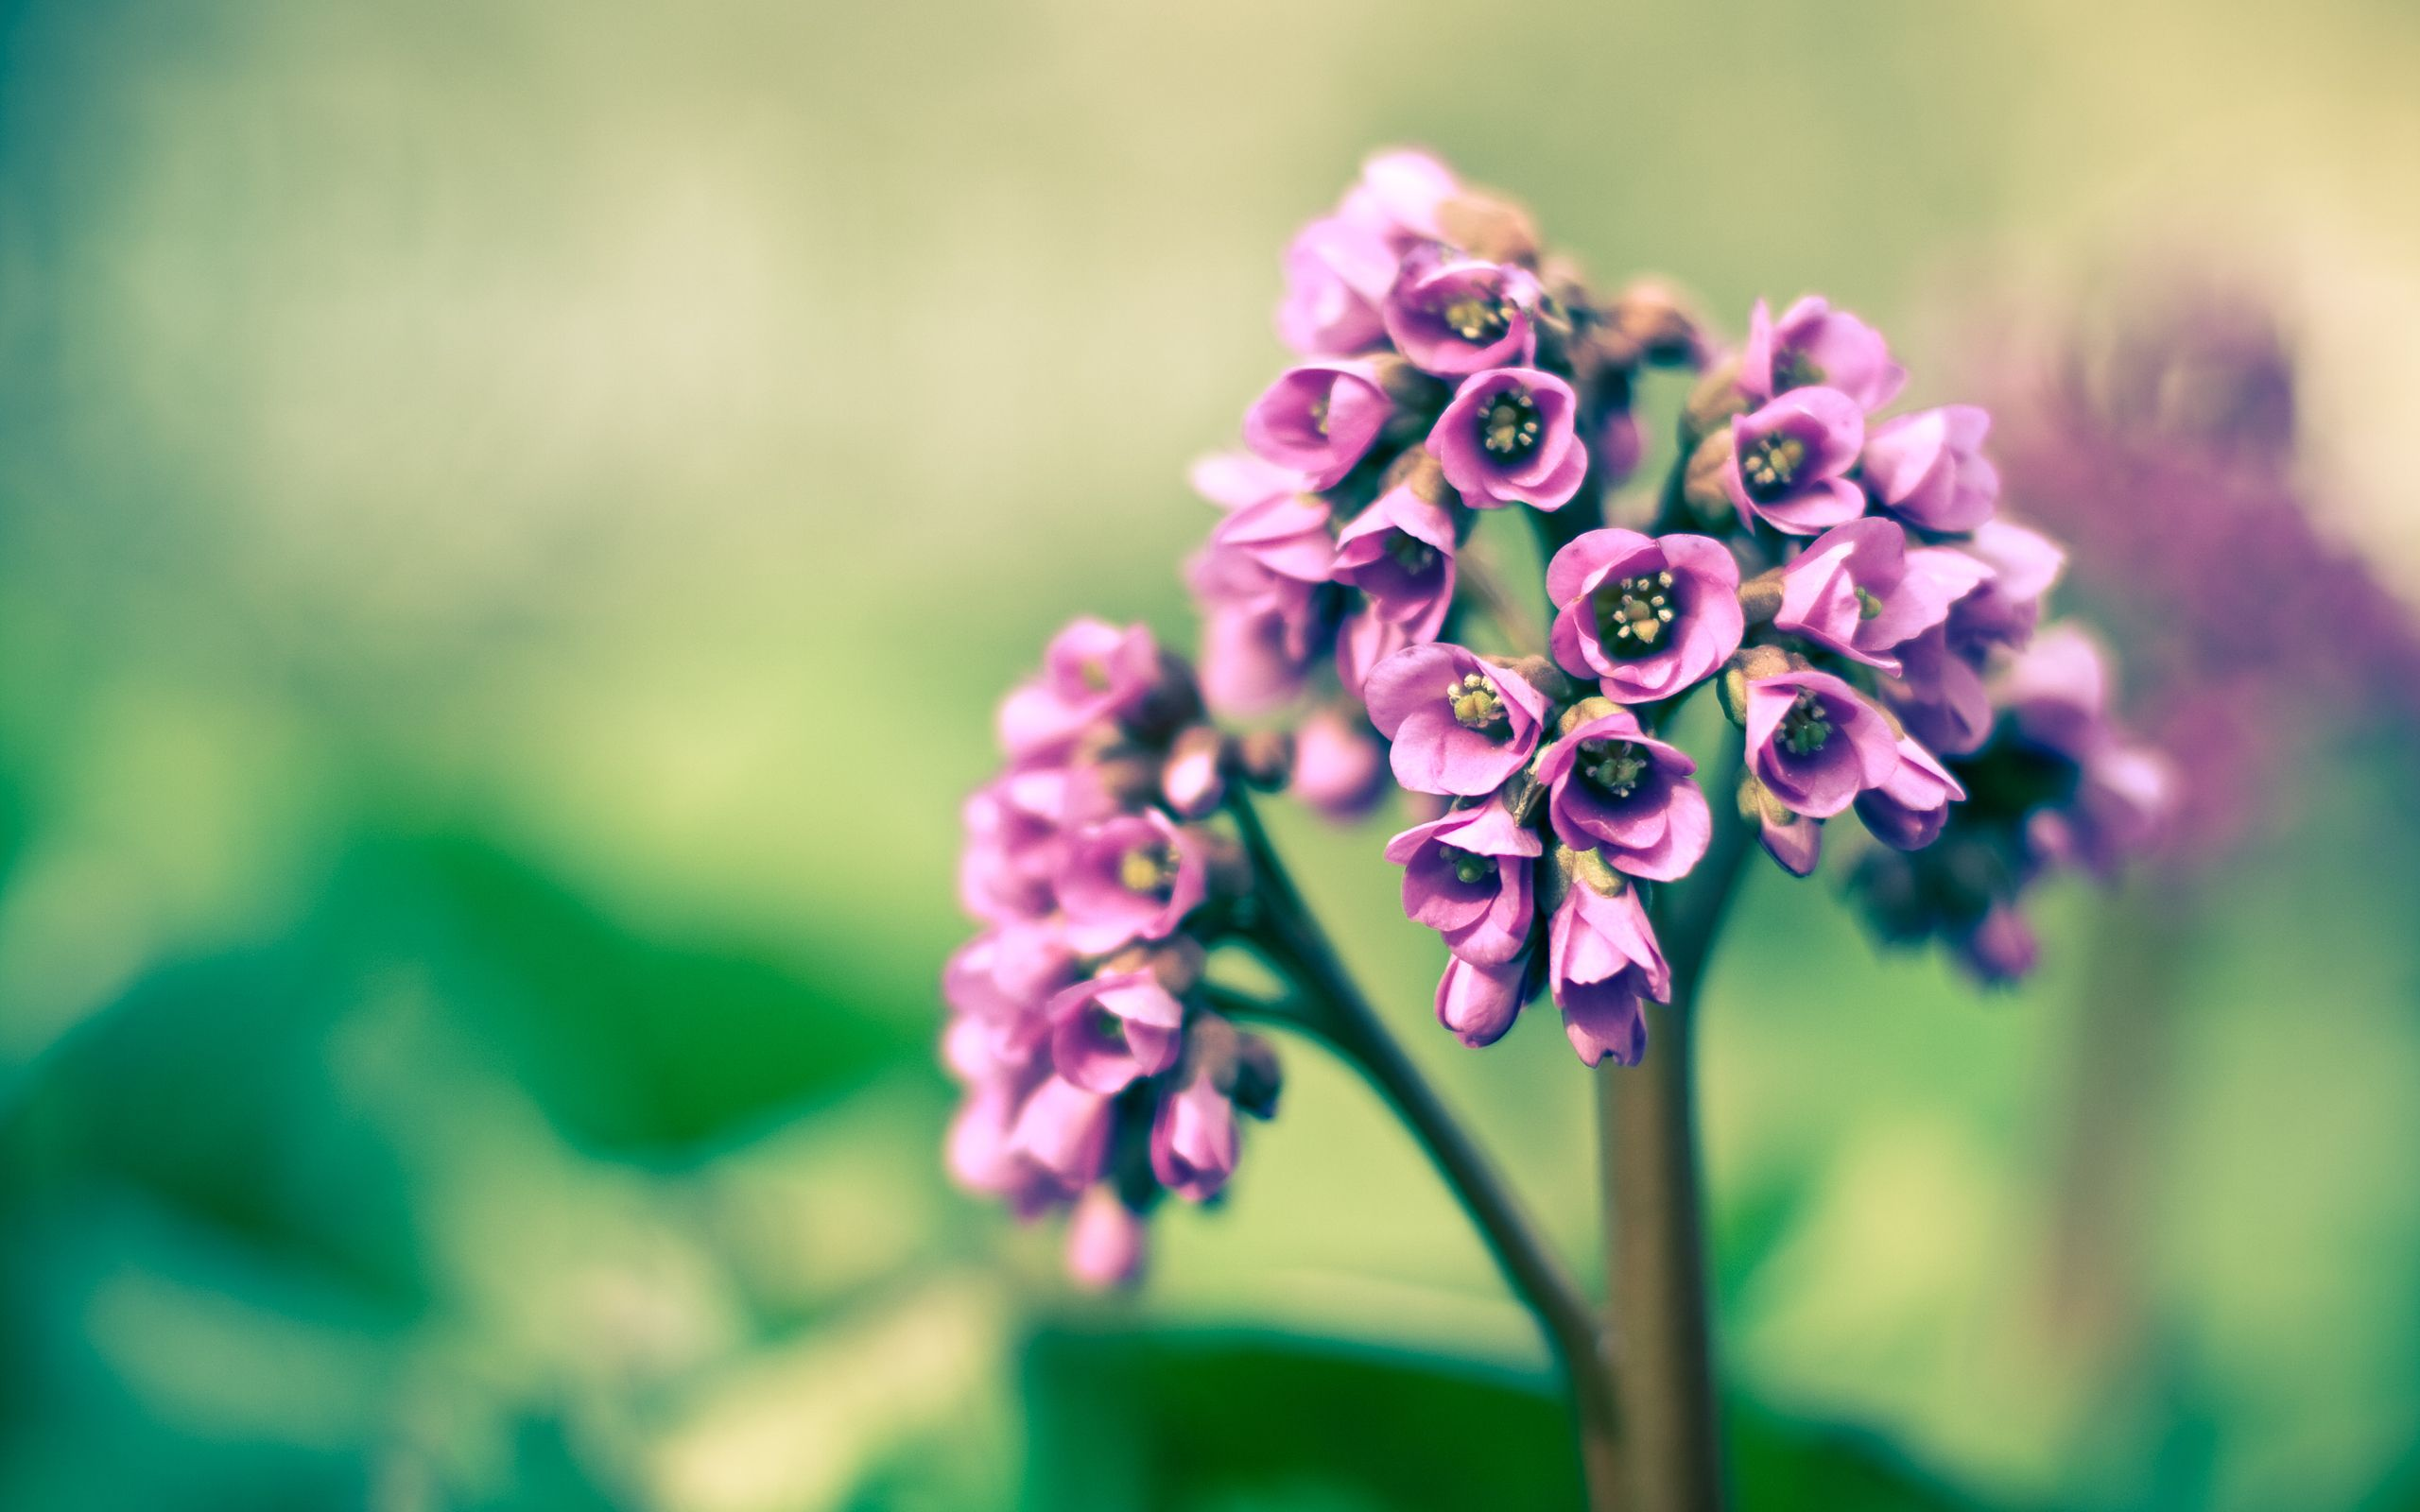 Beautiful Pink Flowers Hd Wallpapers Flower Photography Pinterest